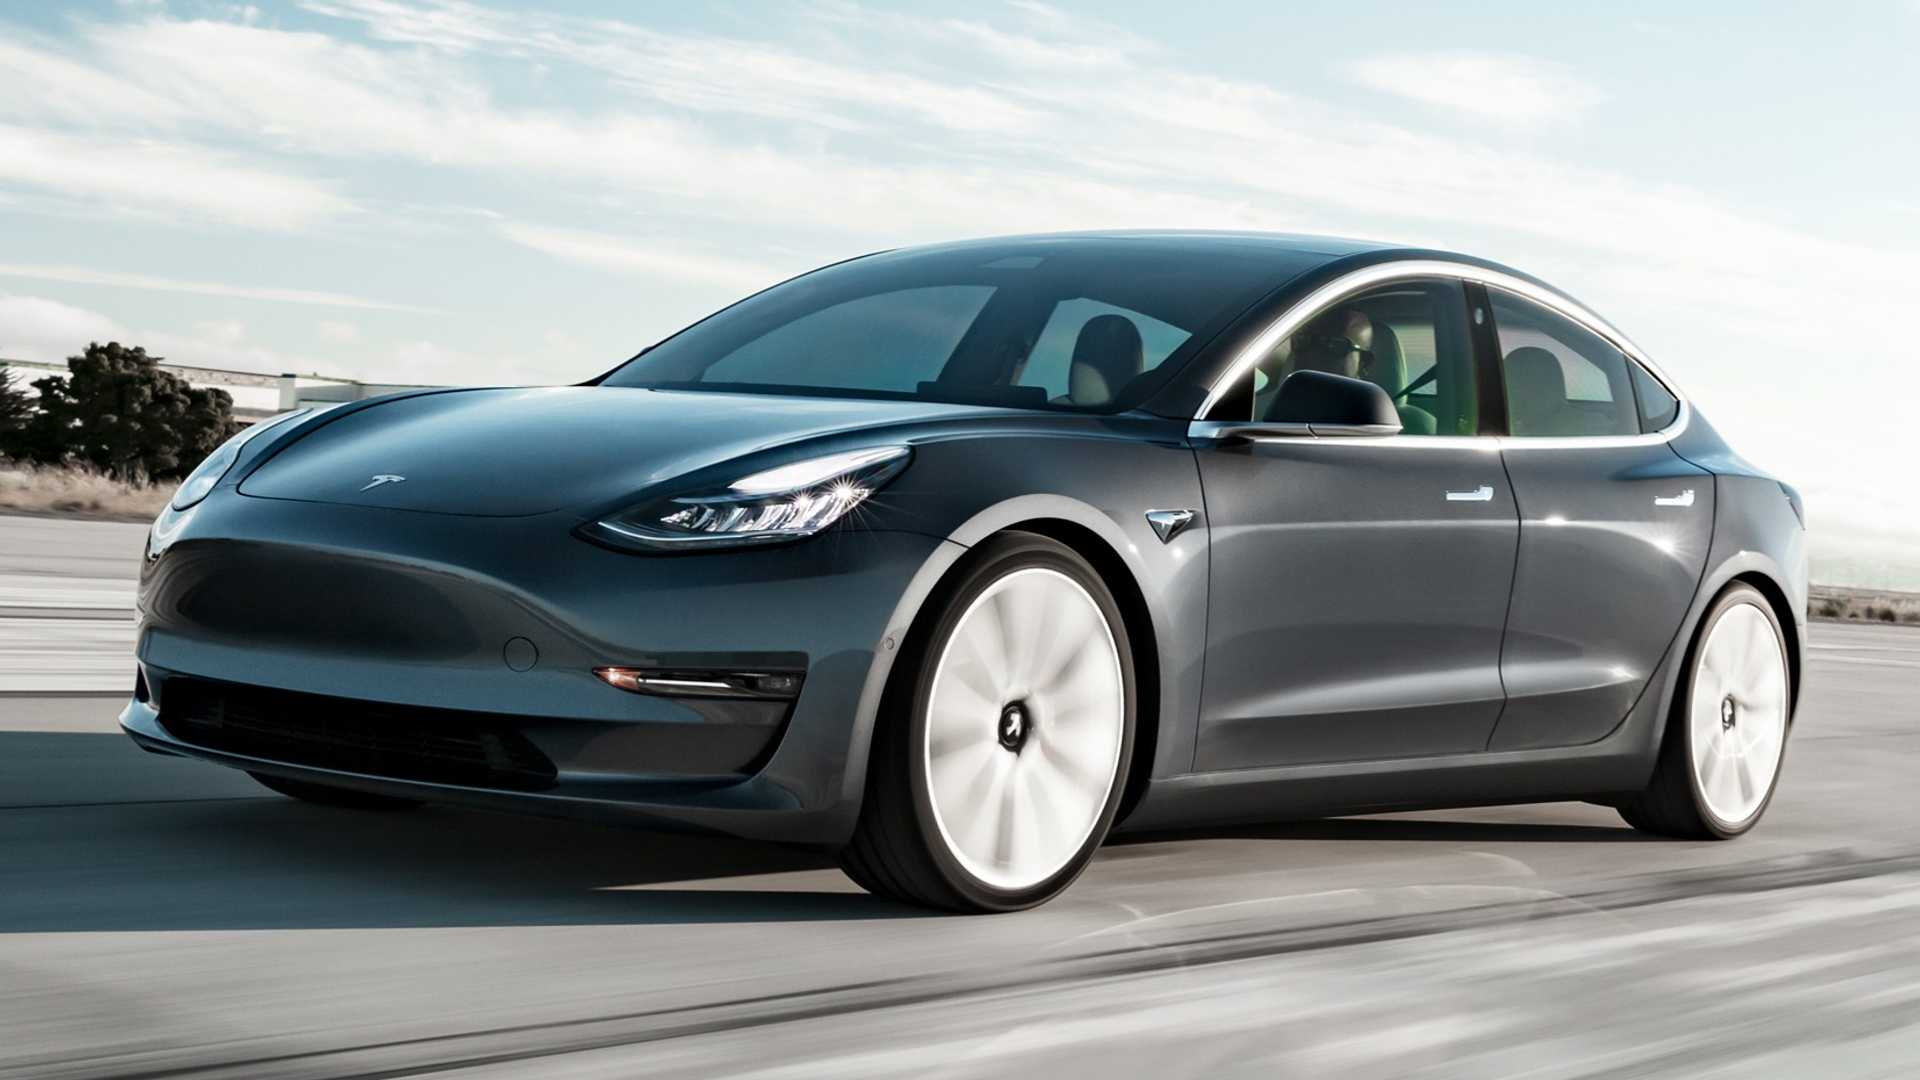 Within weeks, Tesla Model 3 will be world's top-selling EV of all time